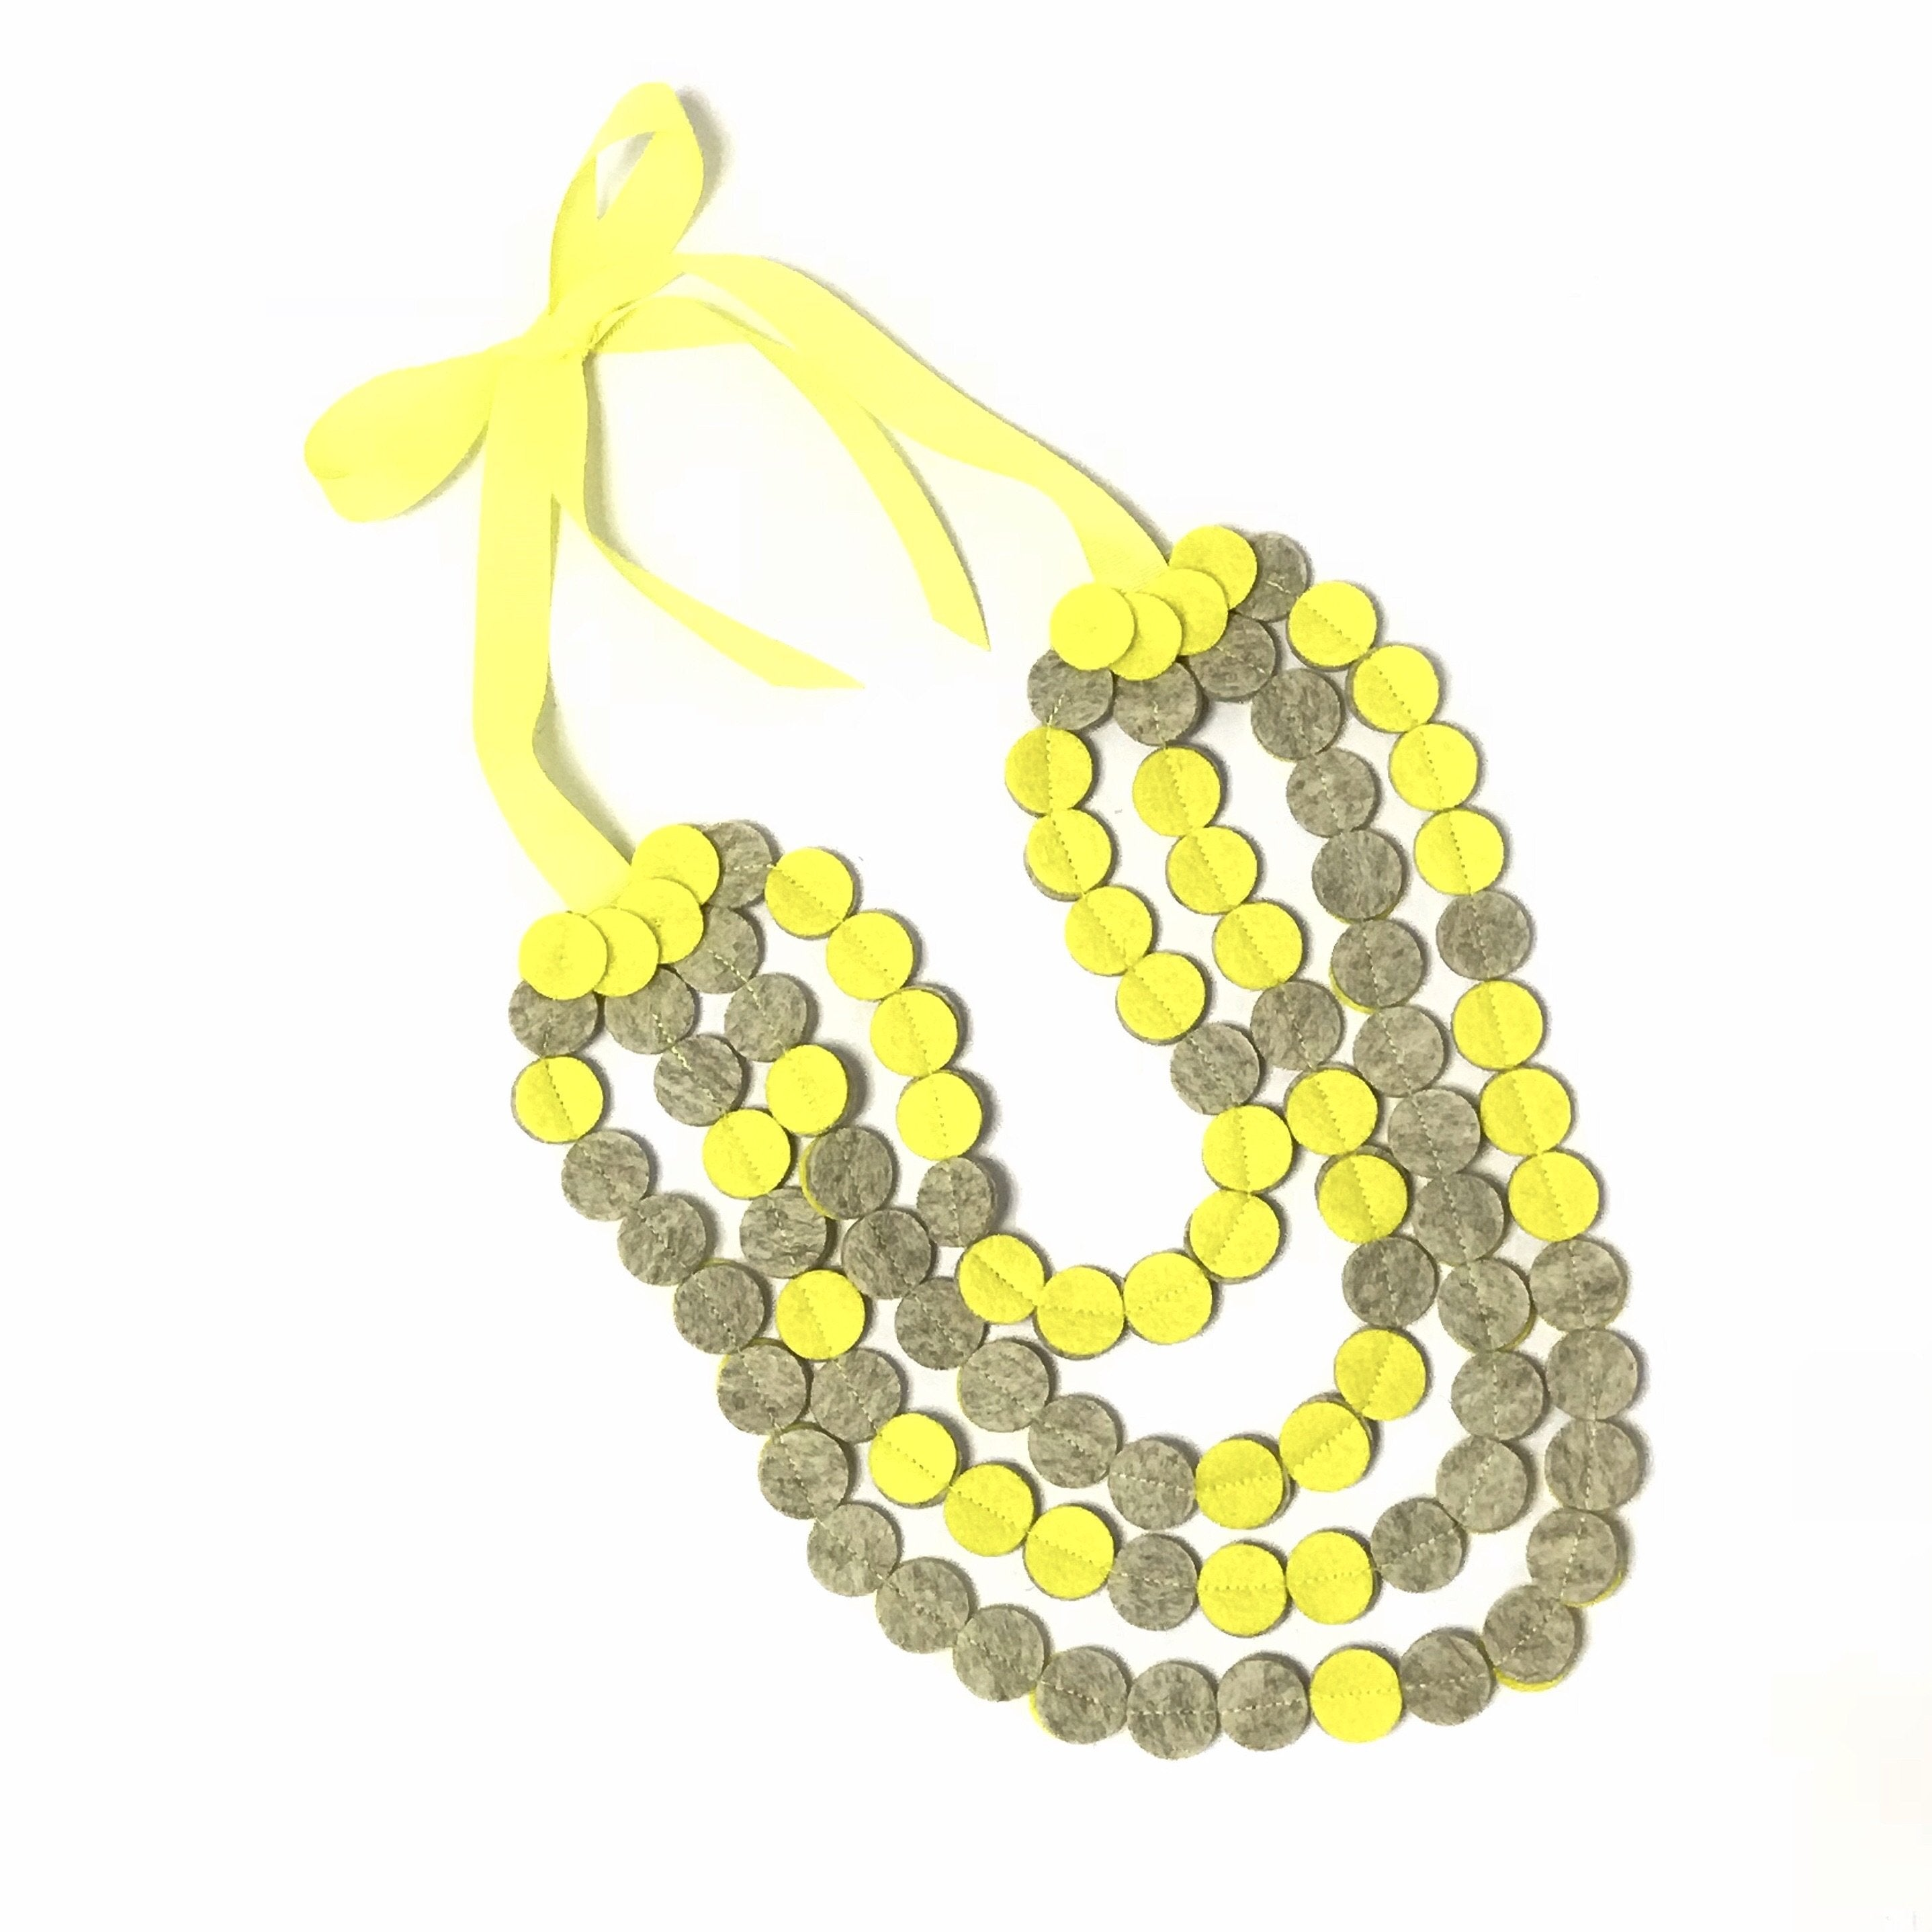 layer felt disc necklace self tie canary yellow grey wedding accessory